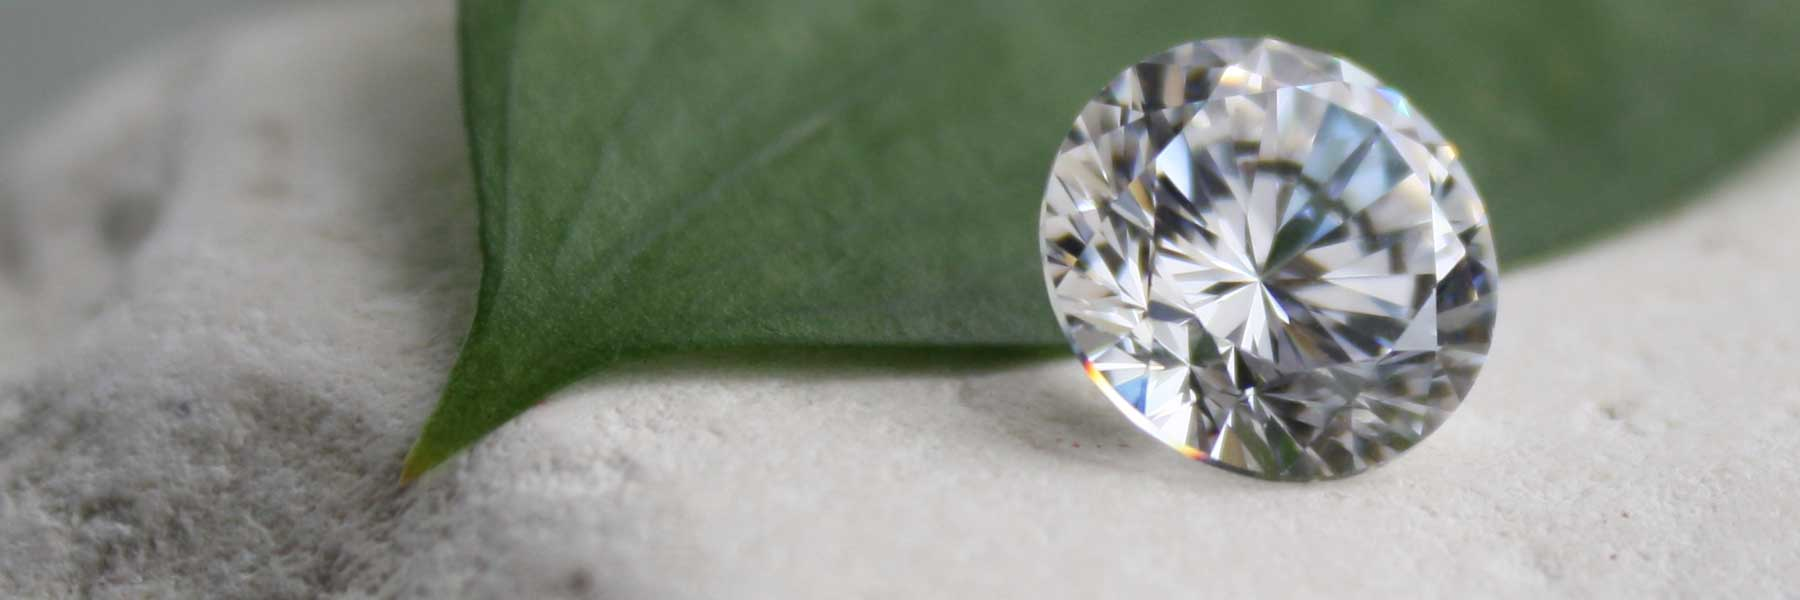 affordable man made diamonds by quorri canada